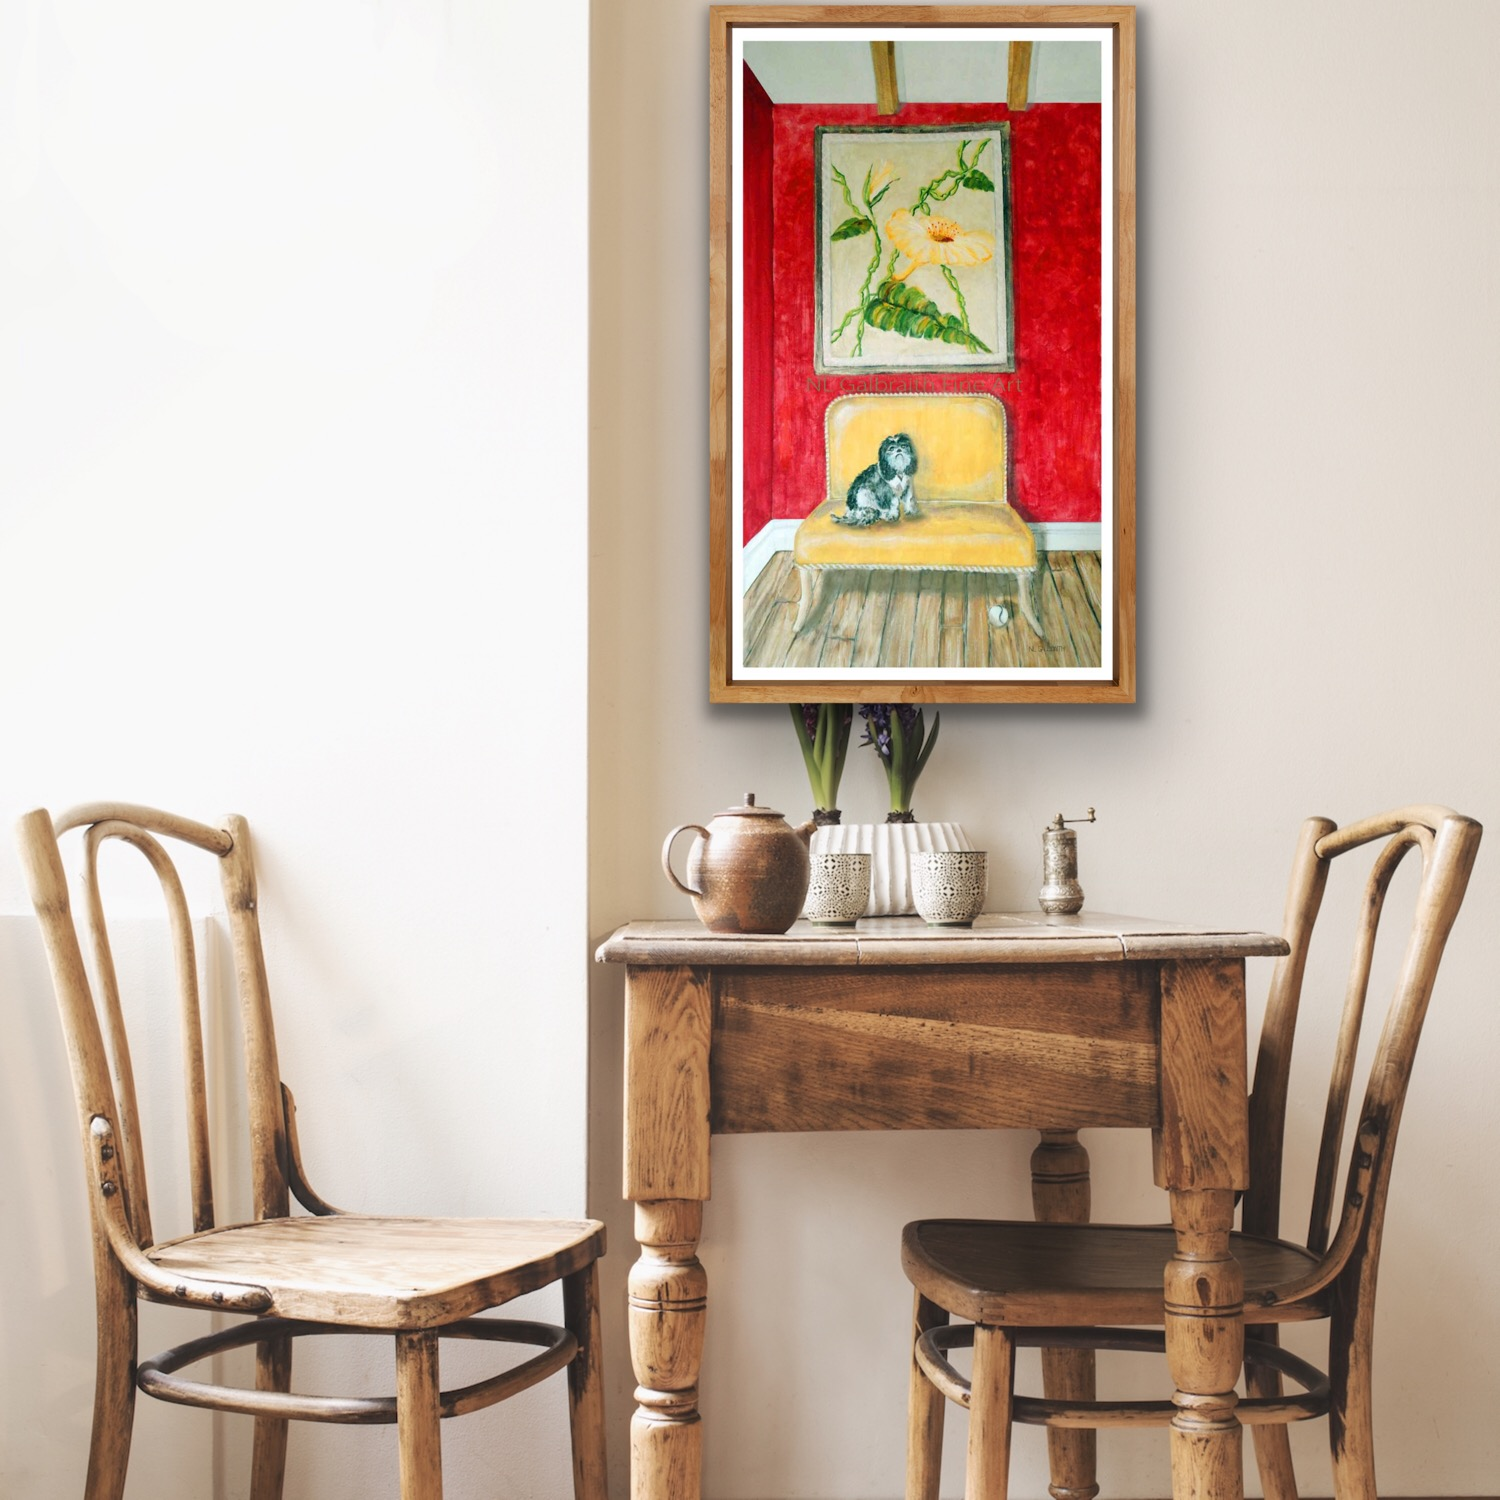 Colorful print of a dog on a sofa in a dining area